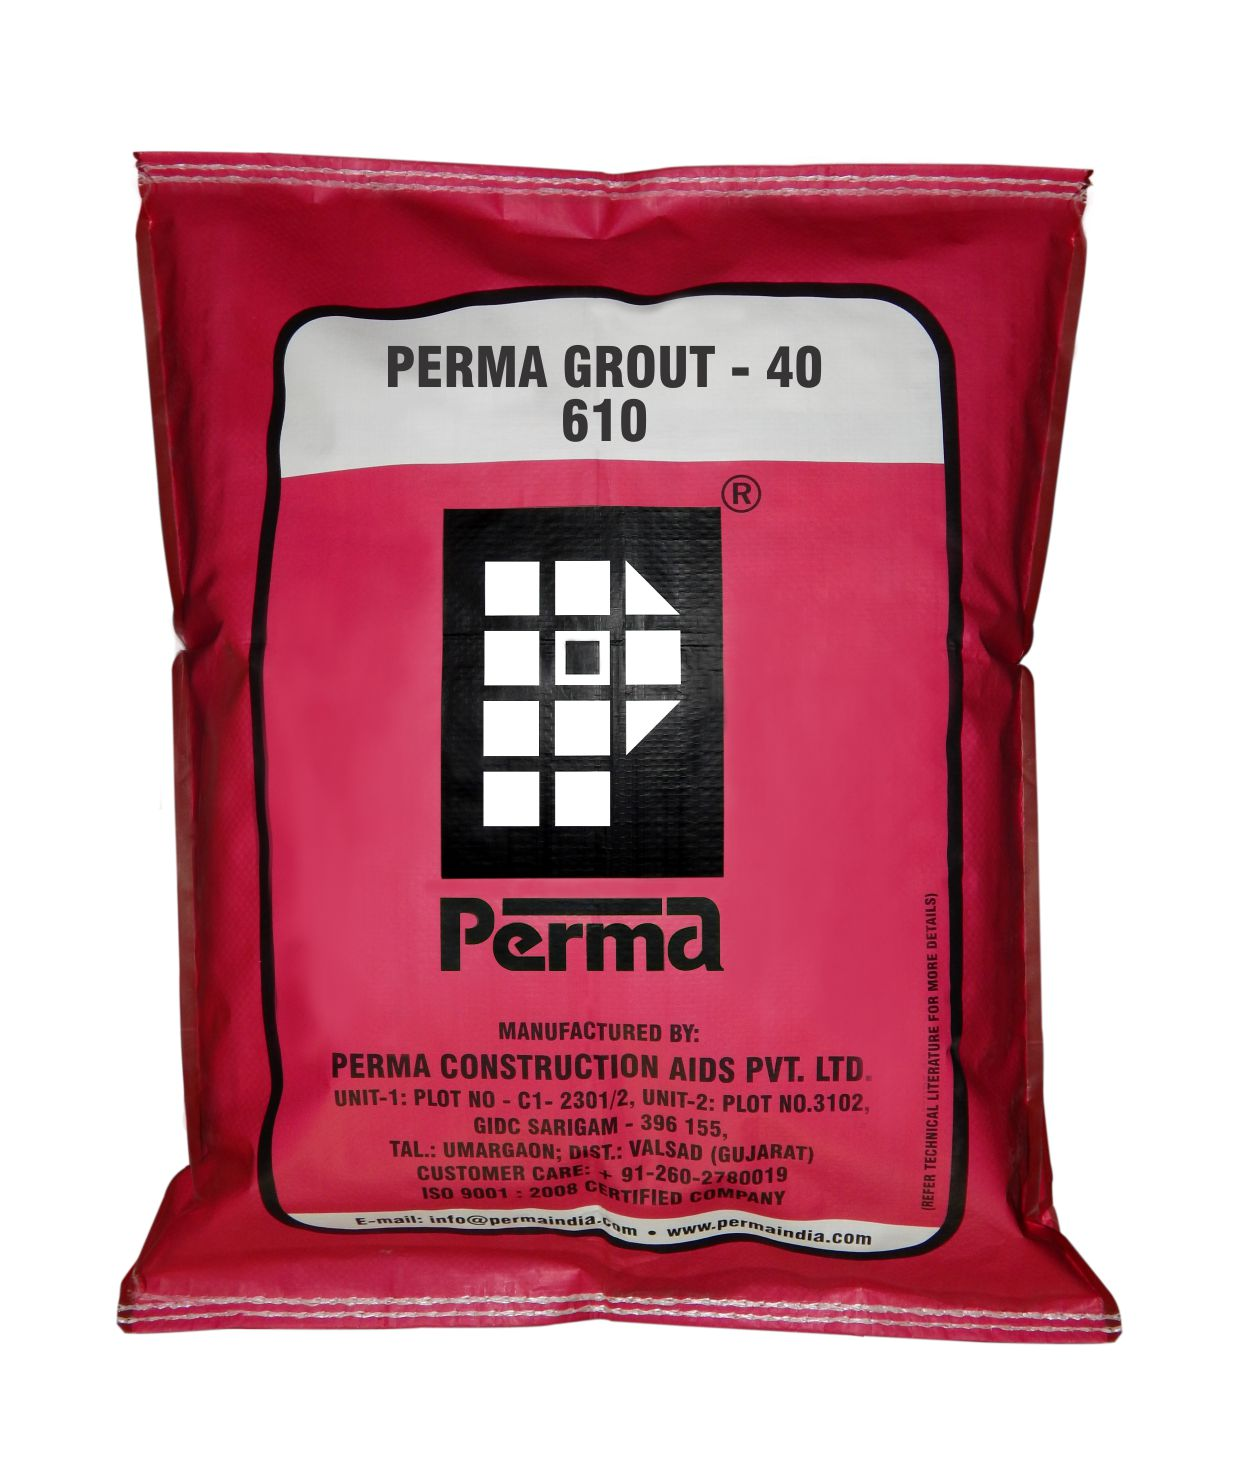 Free Flowing Grout Supplier  We manufacture Free Flowing Non Shrink Grout in the brand name of PERMA in India.  DESCRIPTION Perma Grout – 40 is a free flowing shrinkage compensating grout mix supplied in grey powder form which needs only on site addition of water to form a ready to use grouting slurry.  PRIMARY USES Perma Grout-40 is used for :  Machine foundations Column/Stanchion foundations Grouting structural cut outs and recesses in sanitary fittings like floor taps, annular spaces of pipe passes through walls etc. in residential buildings. Grouting crane rails, anchor bolts, dowel bars etc. ADVANTAGES  Perma Grout – 40 acheives the strength of parent concrete within 72 hours i.e. 200 kgs/cm2. Perma Grout – 40 is shrinkage compensating hence least affected by shrinkage Perma Grout – 40 is free flowing and self leveling hence does not require any vibrations. Perma Grout – 40 is free from any added Chlorides, Sulphates, Nitrates and any ferrous materials. Perma Grout – 40 achieves a final strength of 400 kg/cm2 after 7 days